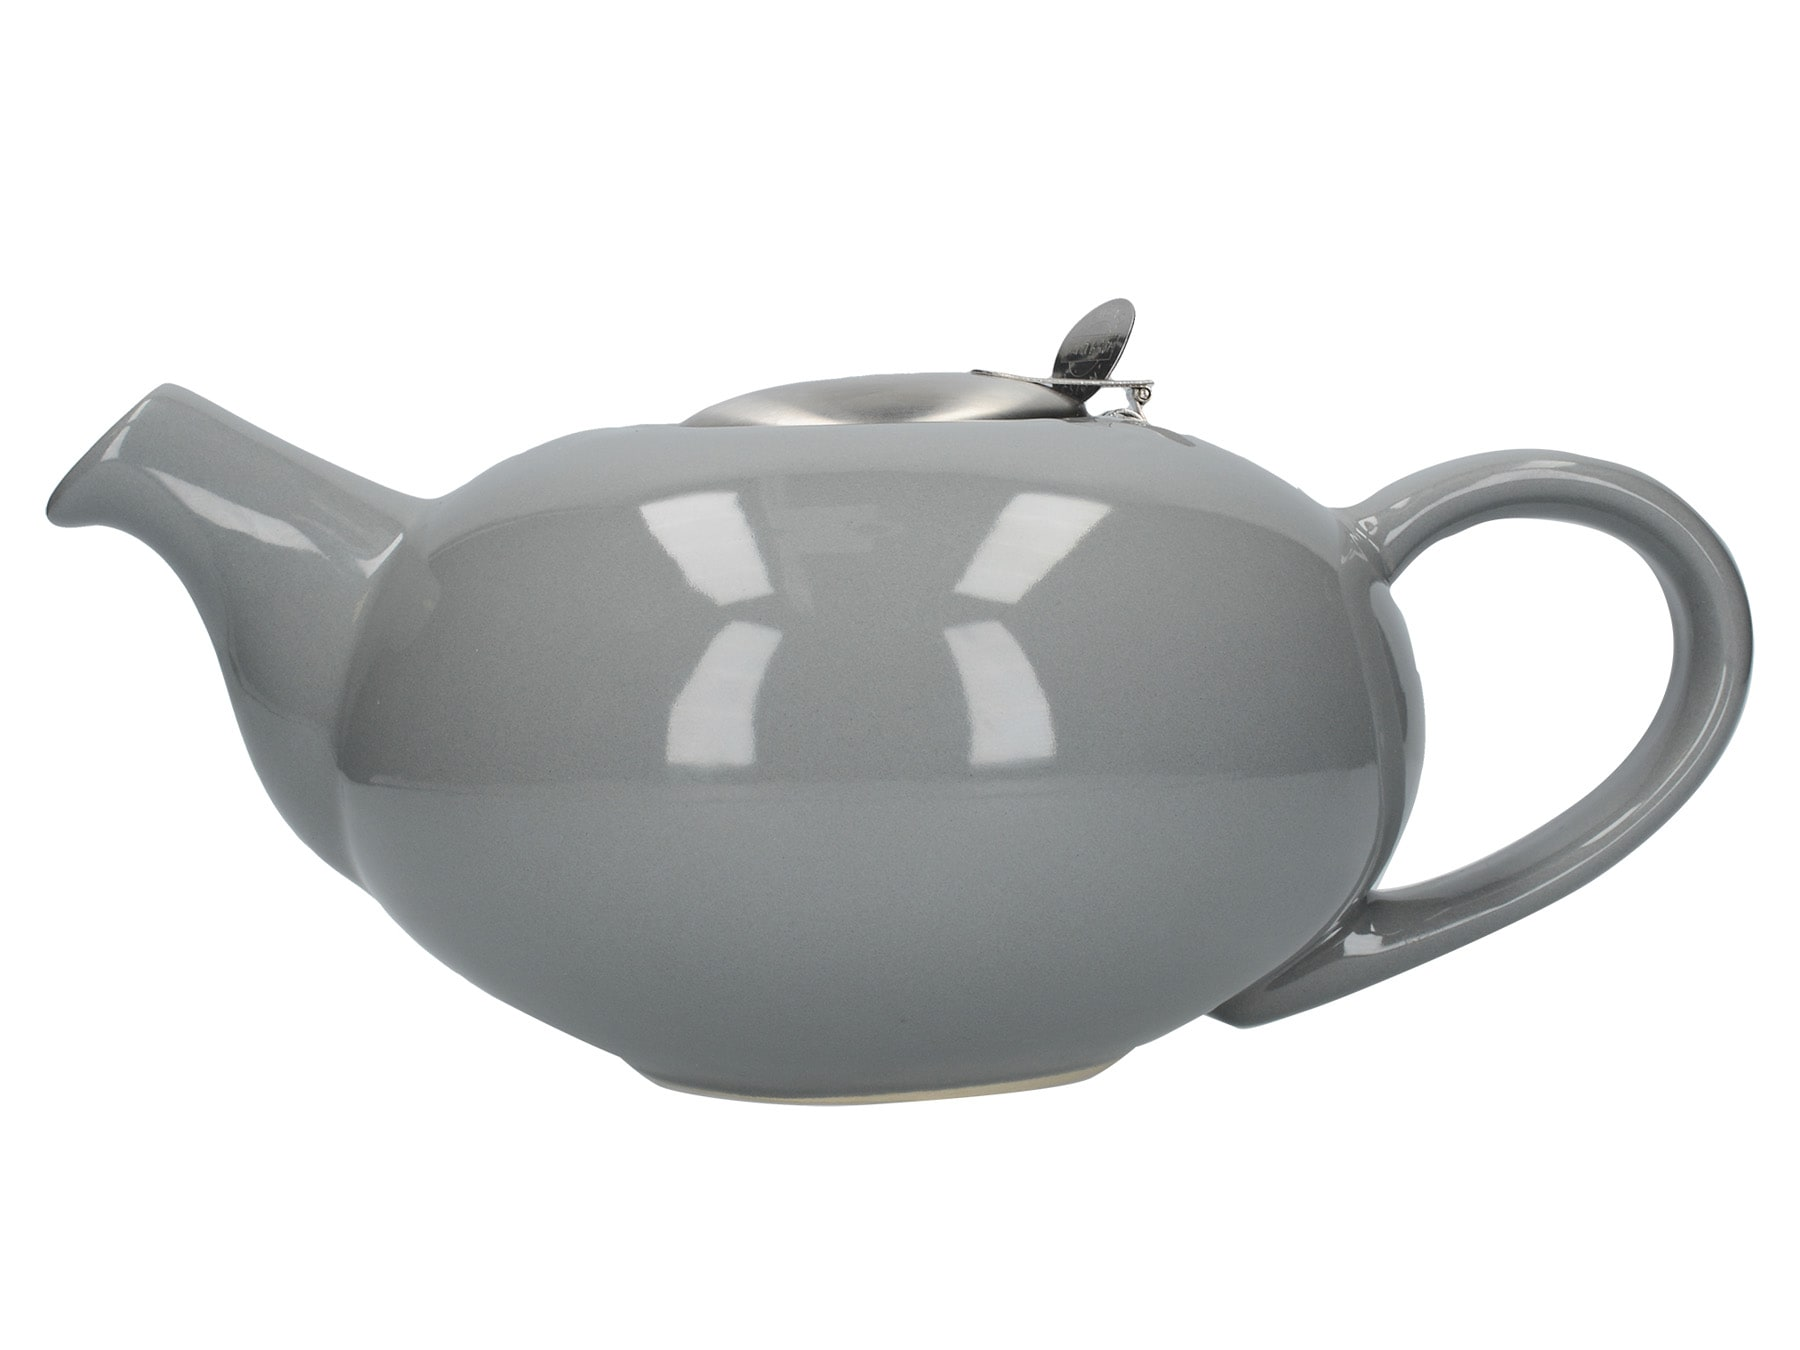 London Pottery Pebble Filter 4 Cup Teapot Light Grey